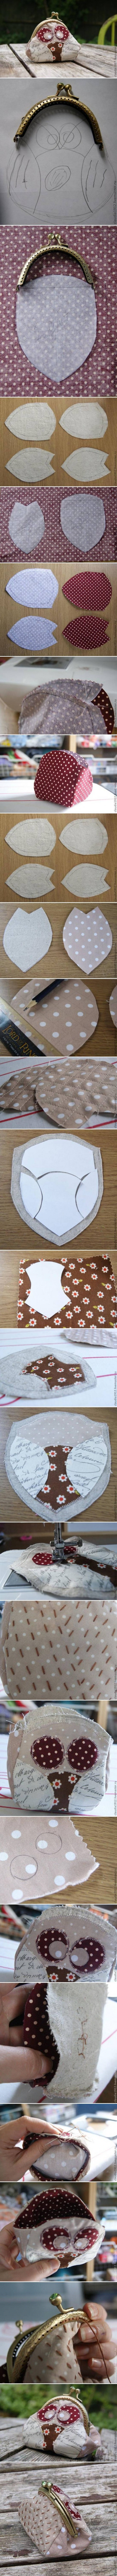 How To Make Cute Fabric Owl Purse step by step DIY tutorial instructions